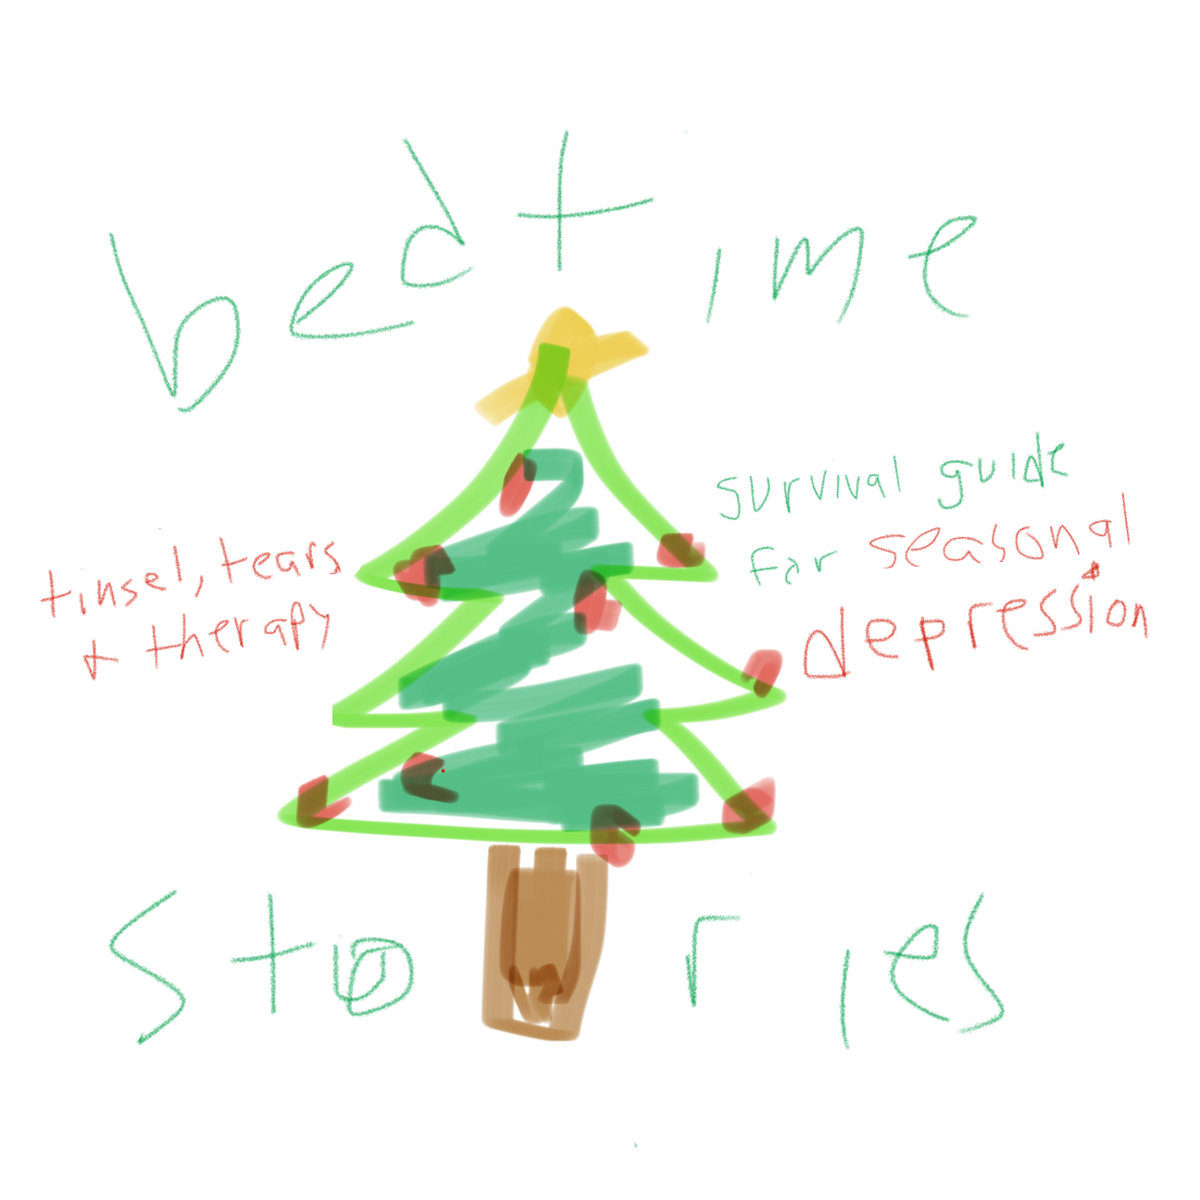 from tinsel tears therapy survival guide for seasonal depression by bedtime stories - Christmas Bedtime Stories